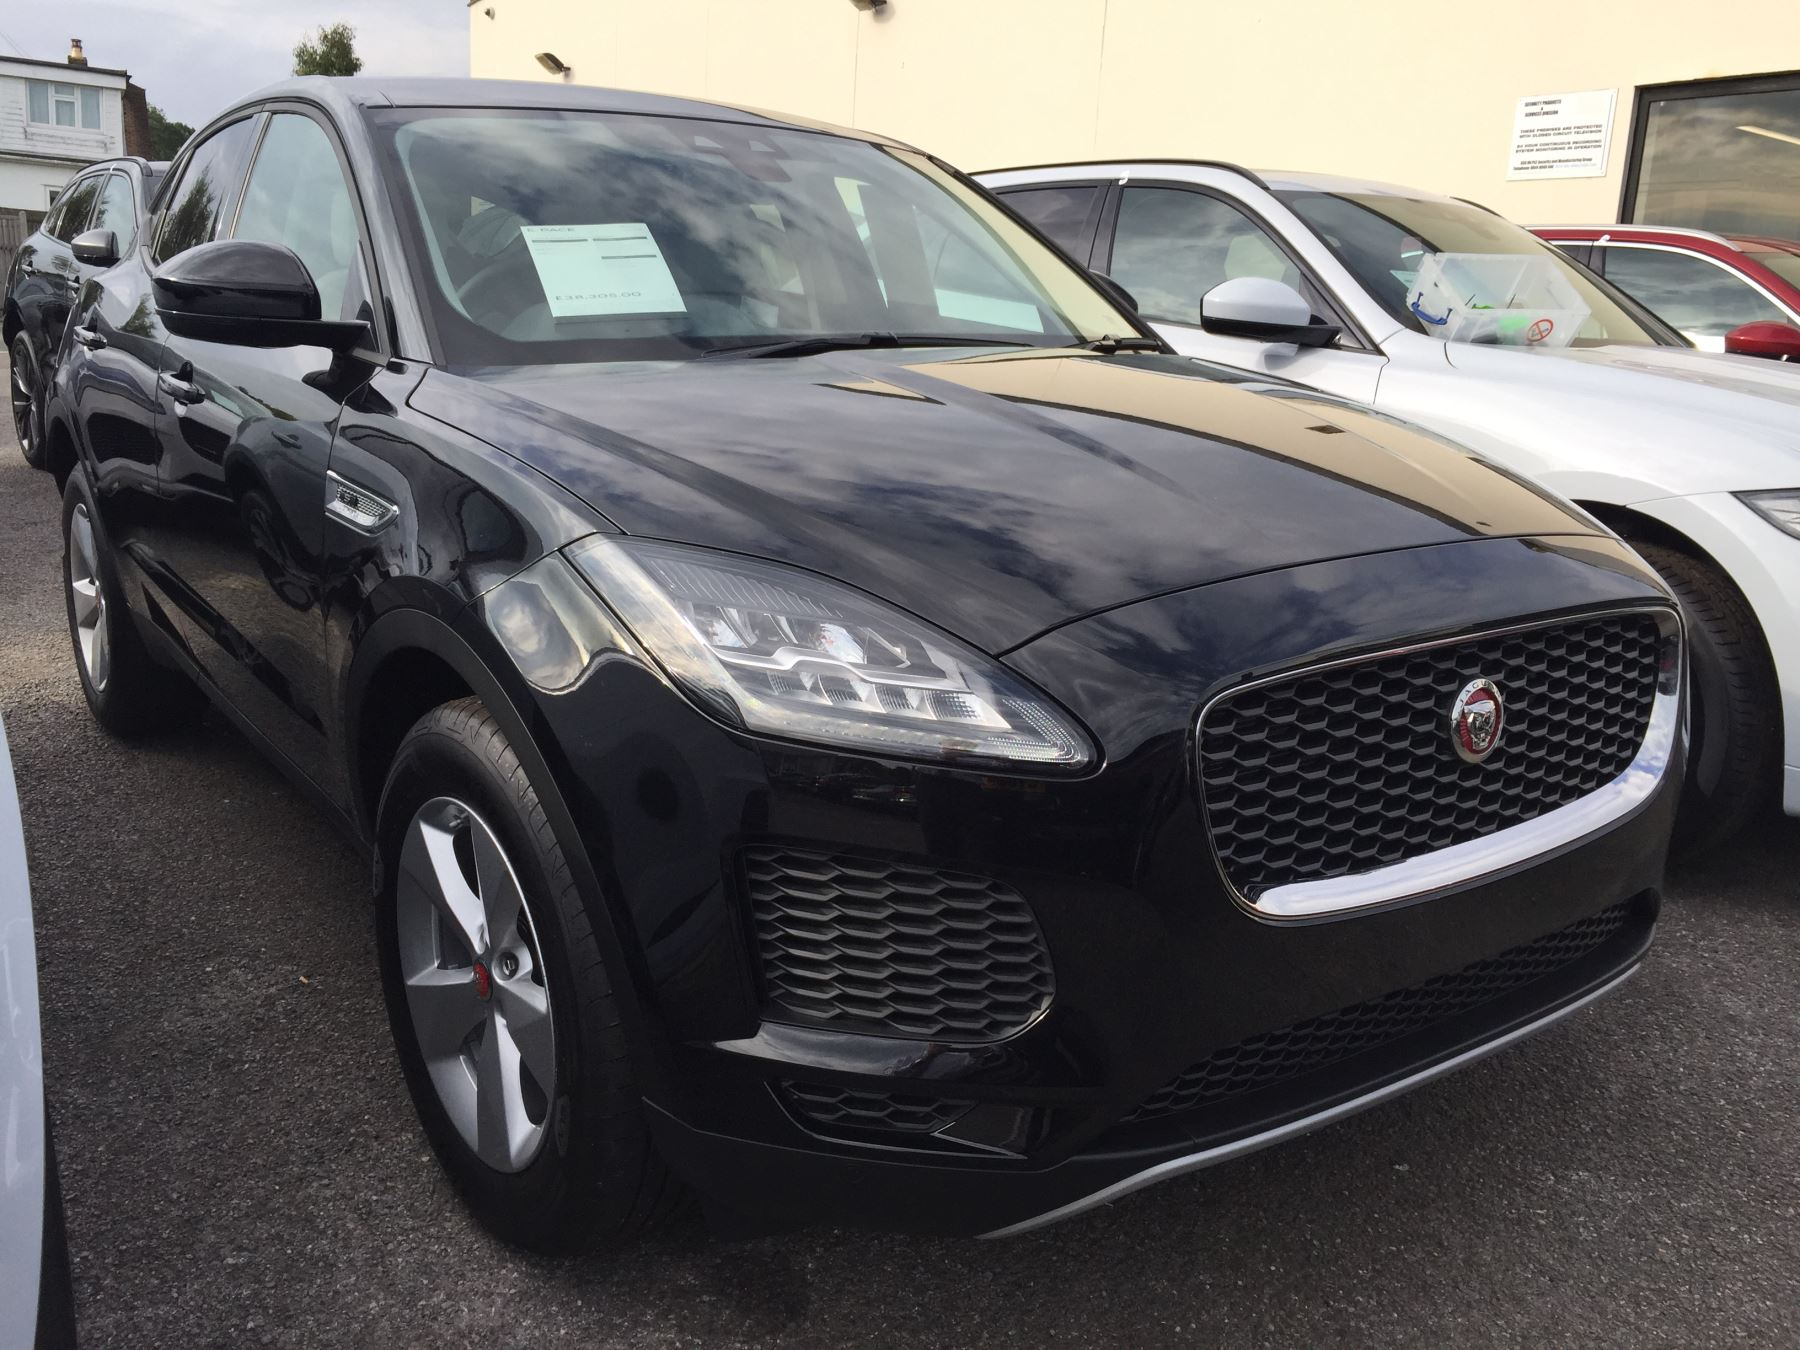 Jaguar E-PACE 2.0d S 2,000 TOTAL DEPOSIT CONTRIBUTION Diesel Automatic 5 door Estate (2020)